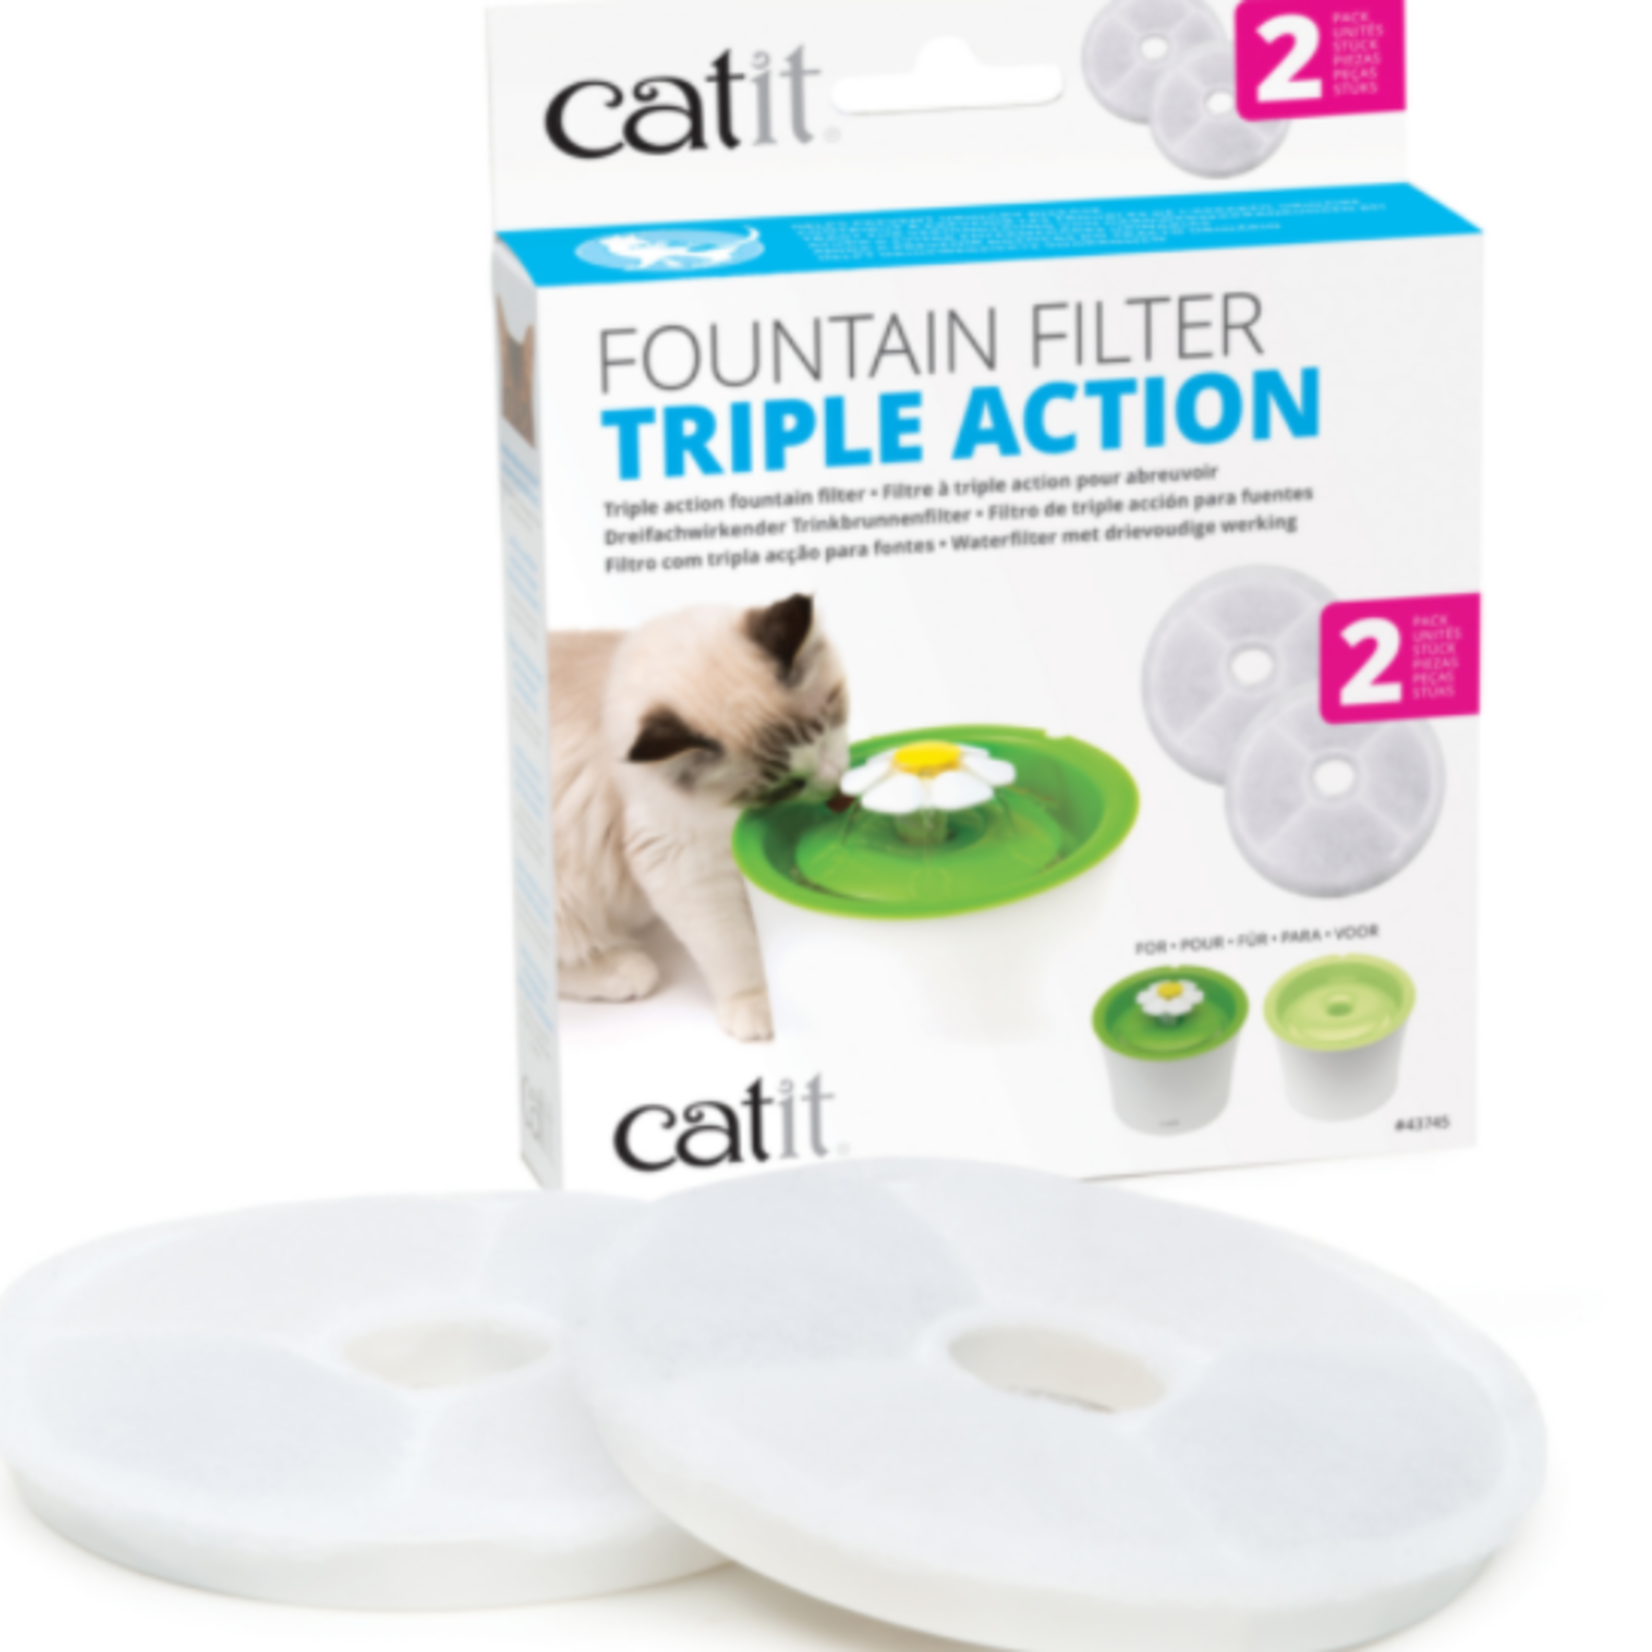 Catit Triple Action Fountain Filter - 2 pack